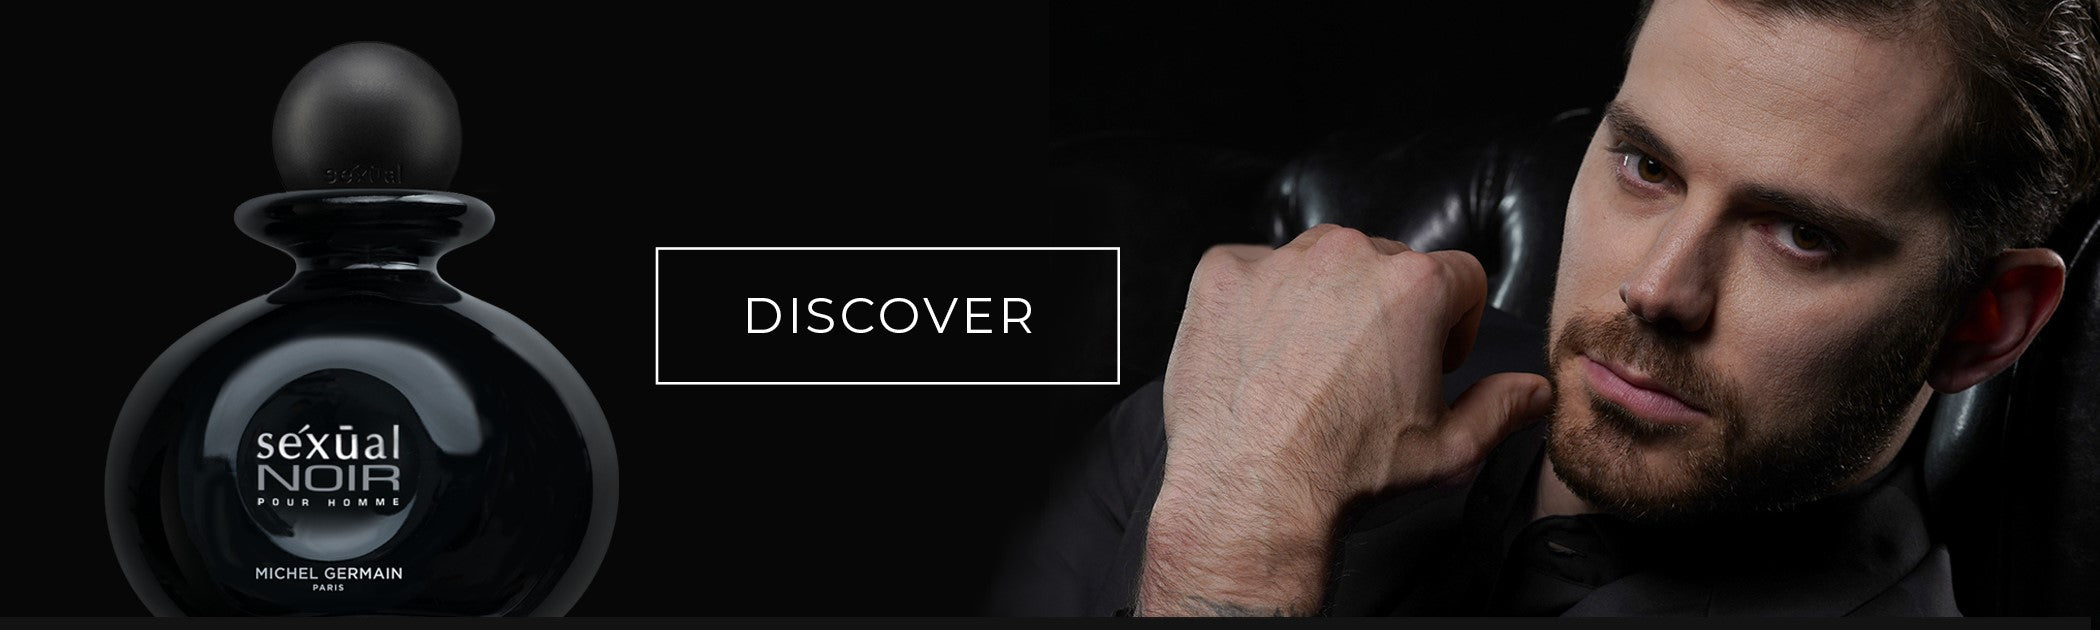 michel-germain-sexual-noir-pour-homme-discovery-banner-mobile